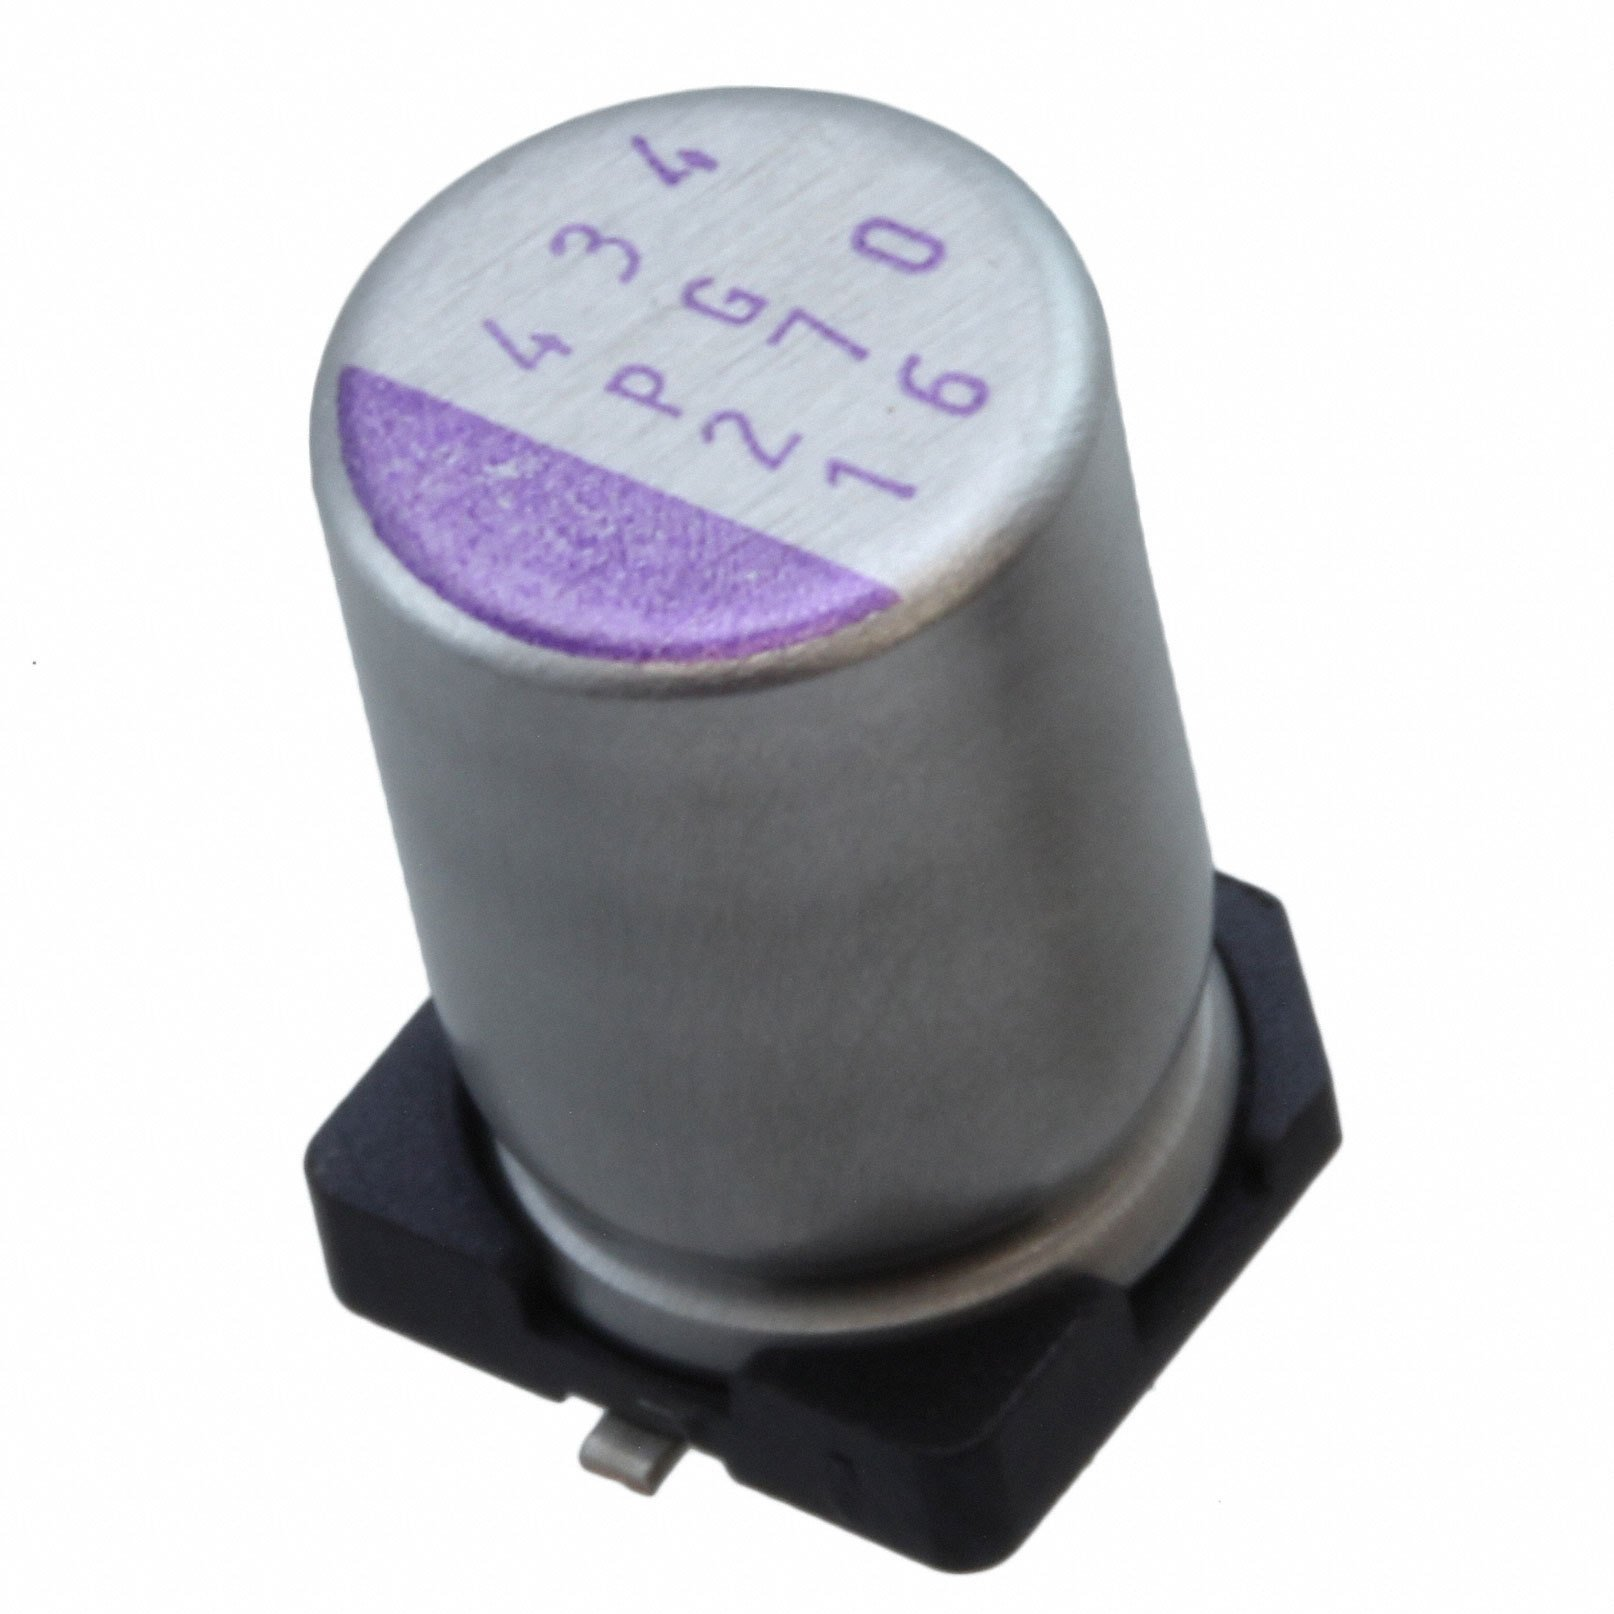 Image of 16SVPG270M by Panasonic Electronic Components